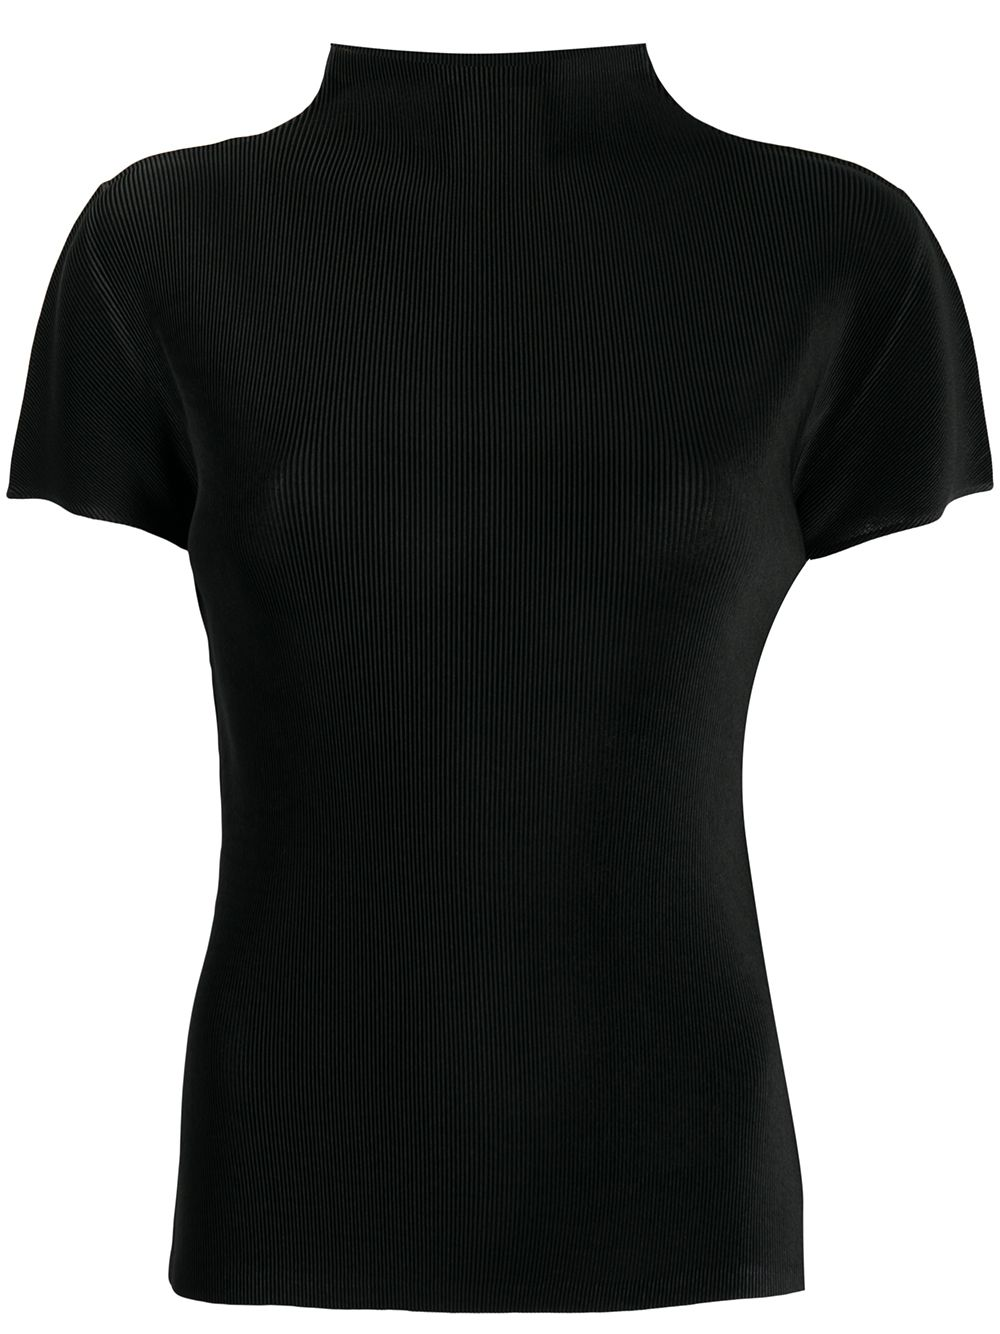 Picture of Issey Miyake Pleats Please | Mock Neck Pleated Top